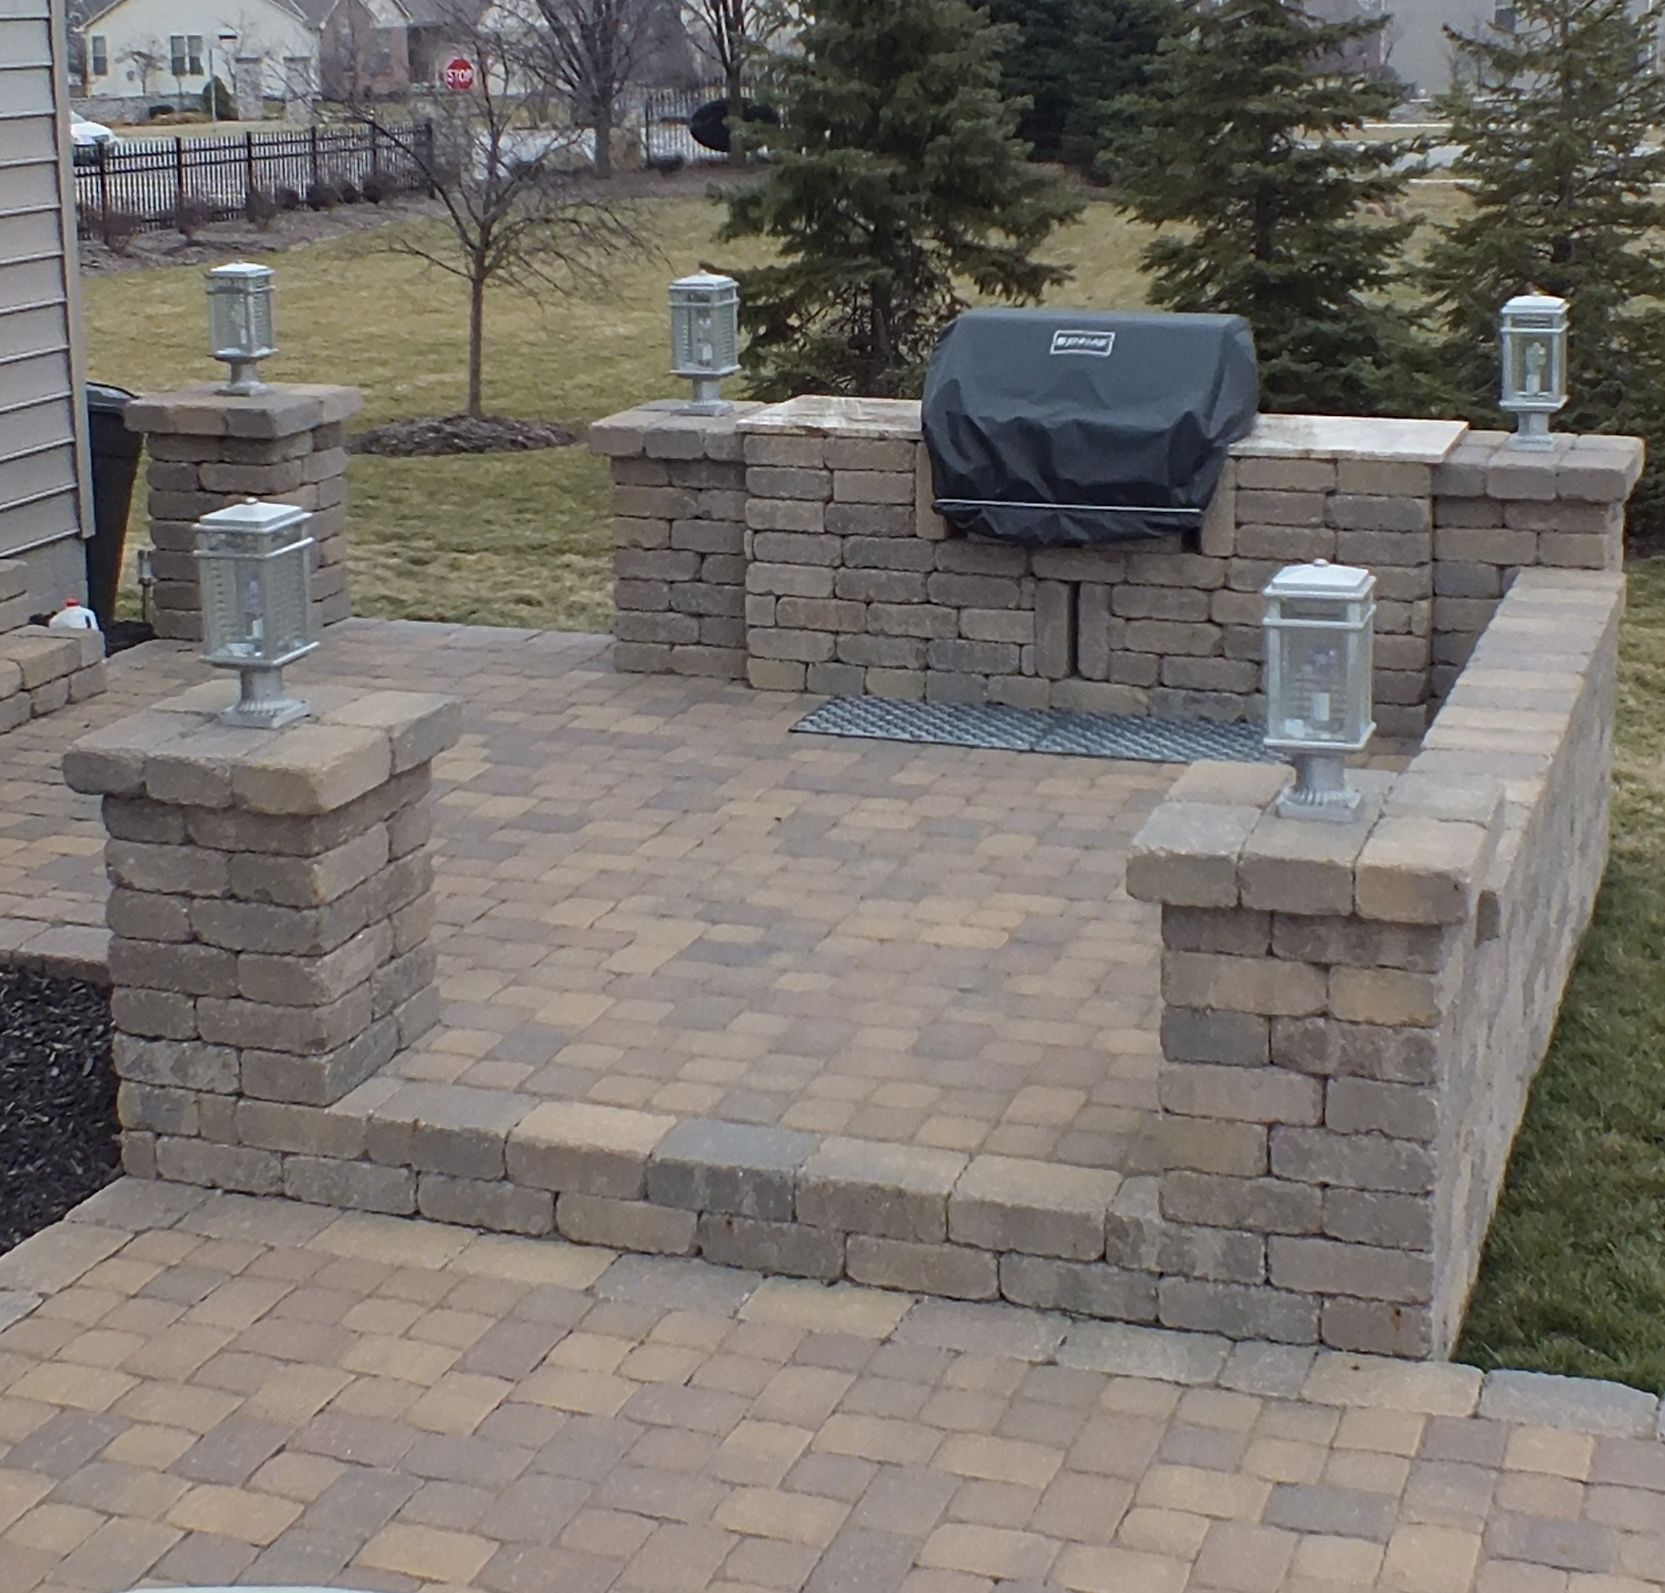 Backyard Grill area | Backyard, Outdoor living areas, Patio on Patio Grilling Area id=54108